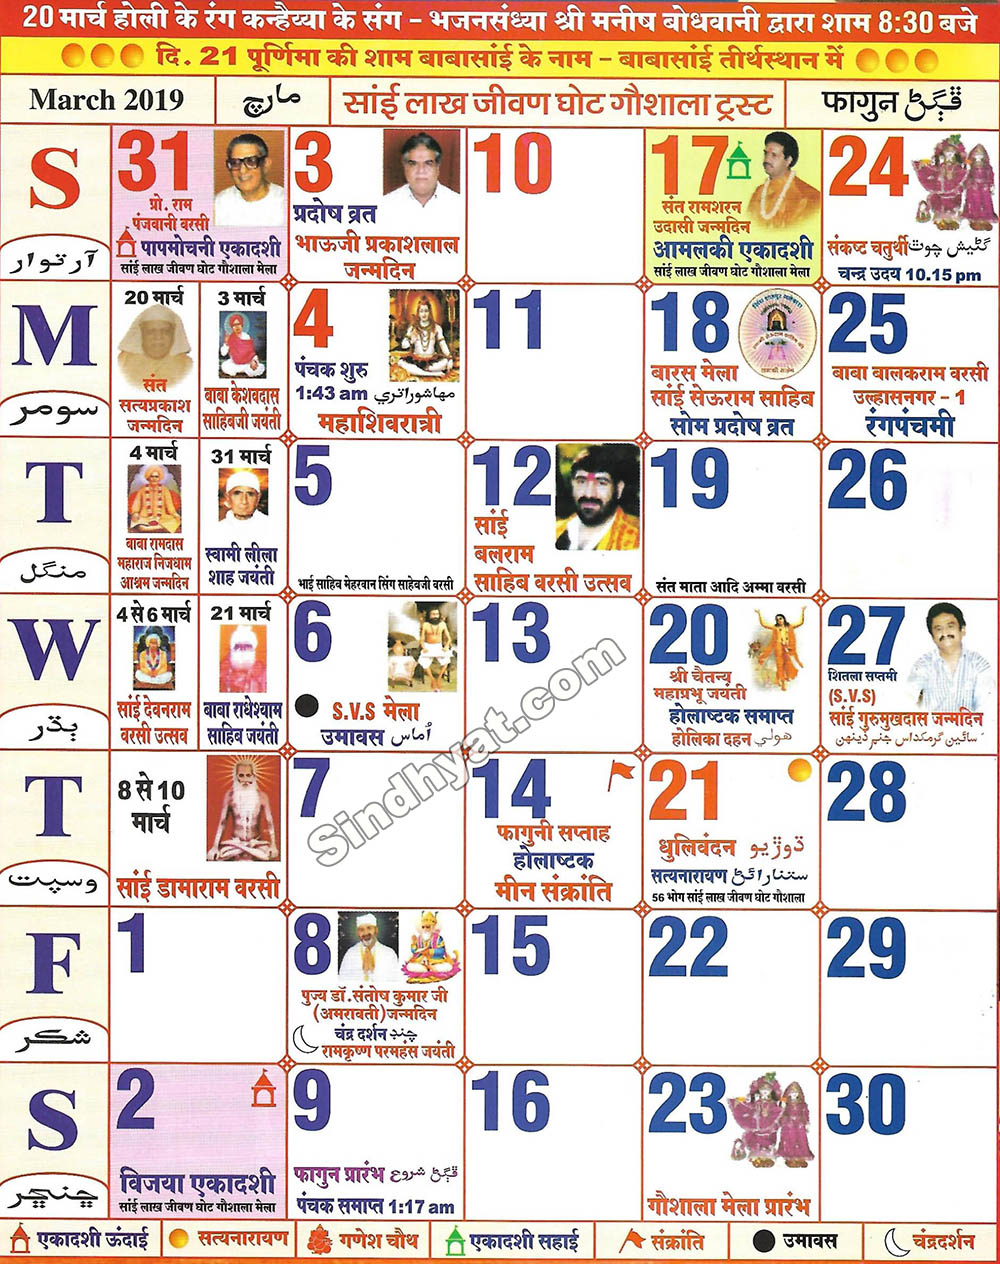 Sindhi Calendar for the month of March, 2019